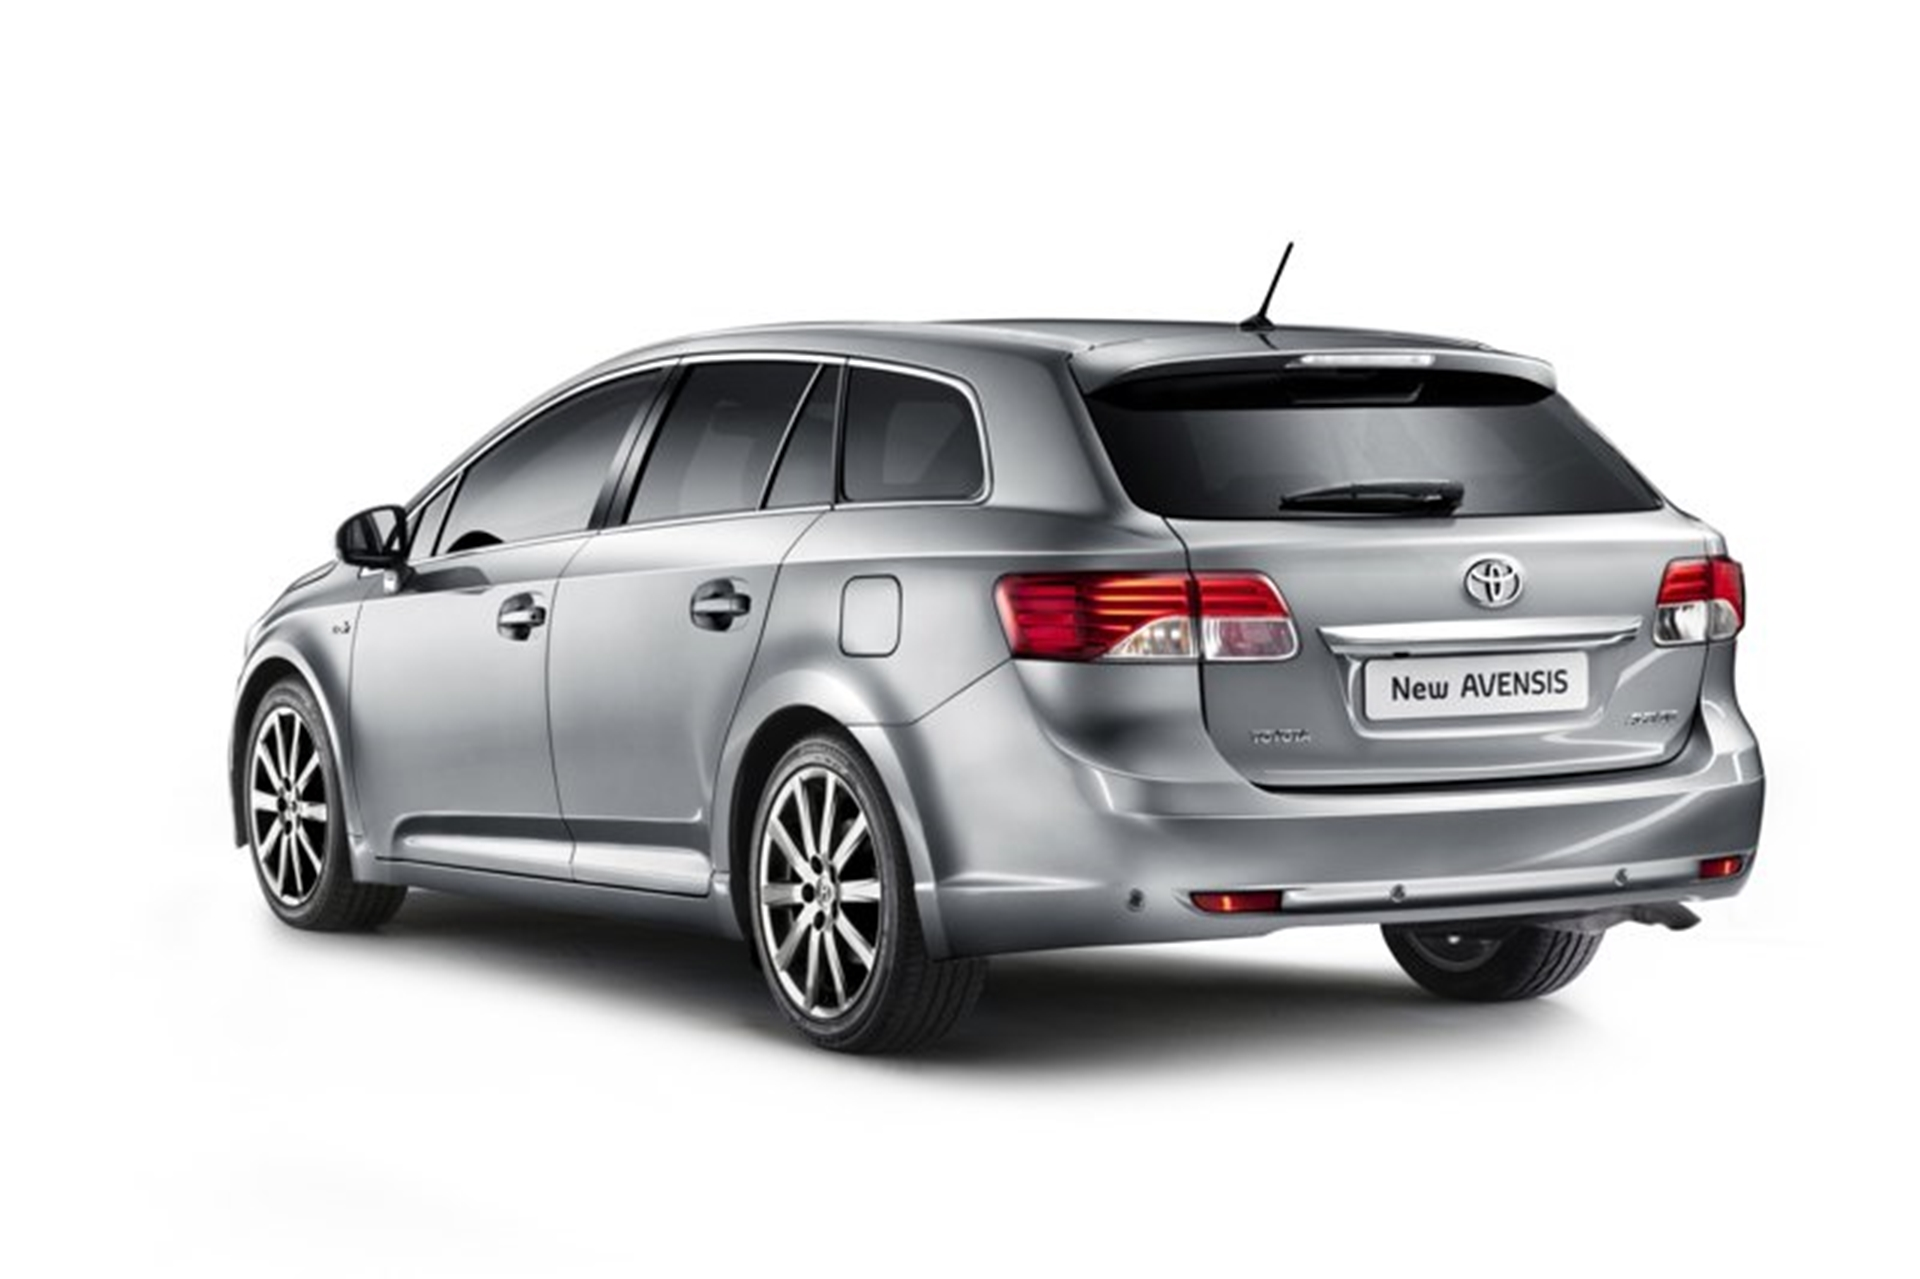 Toyota Avensis 2011 New